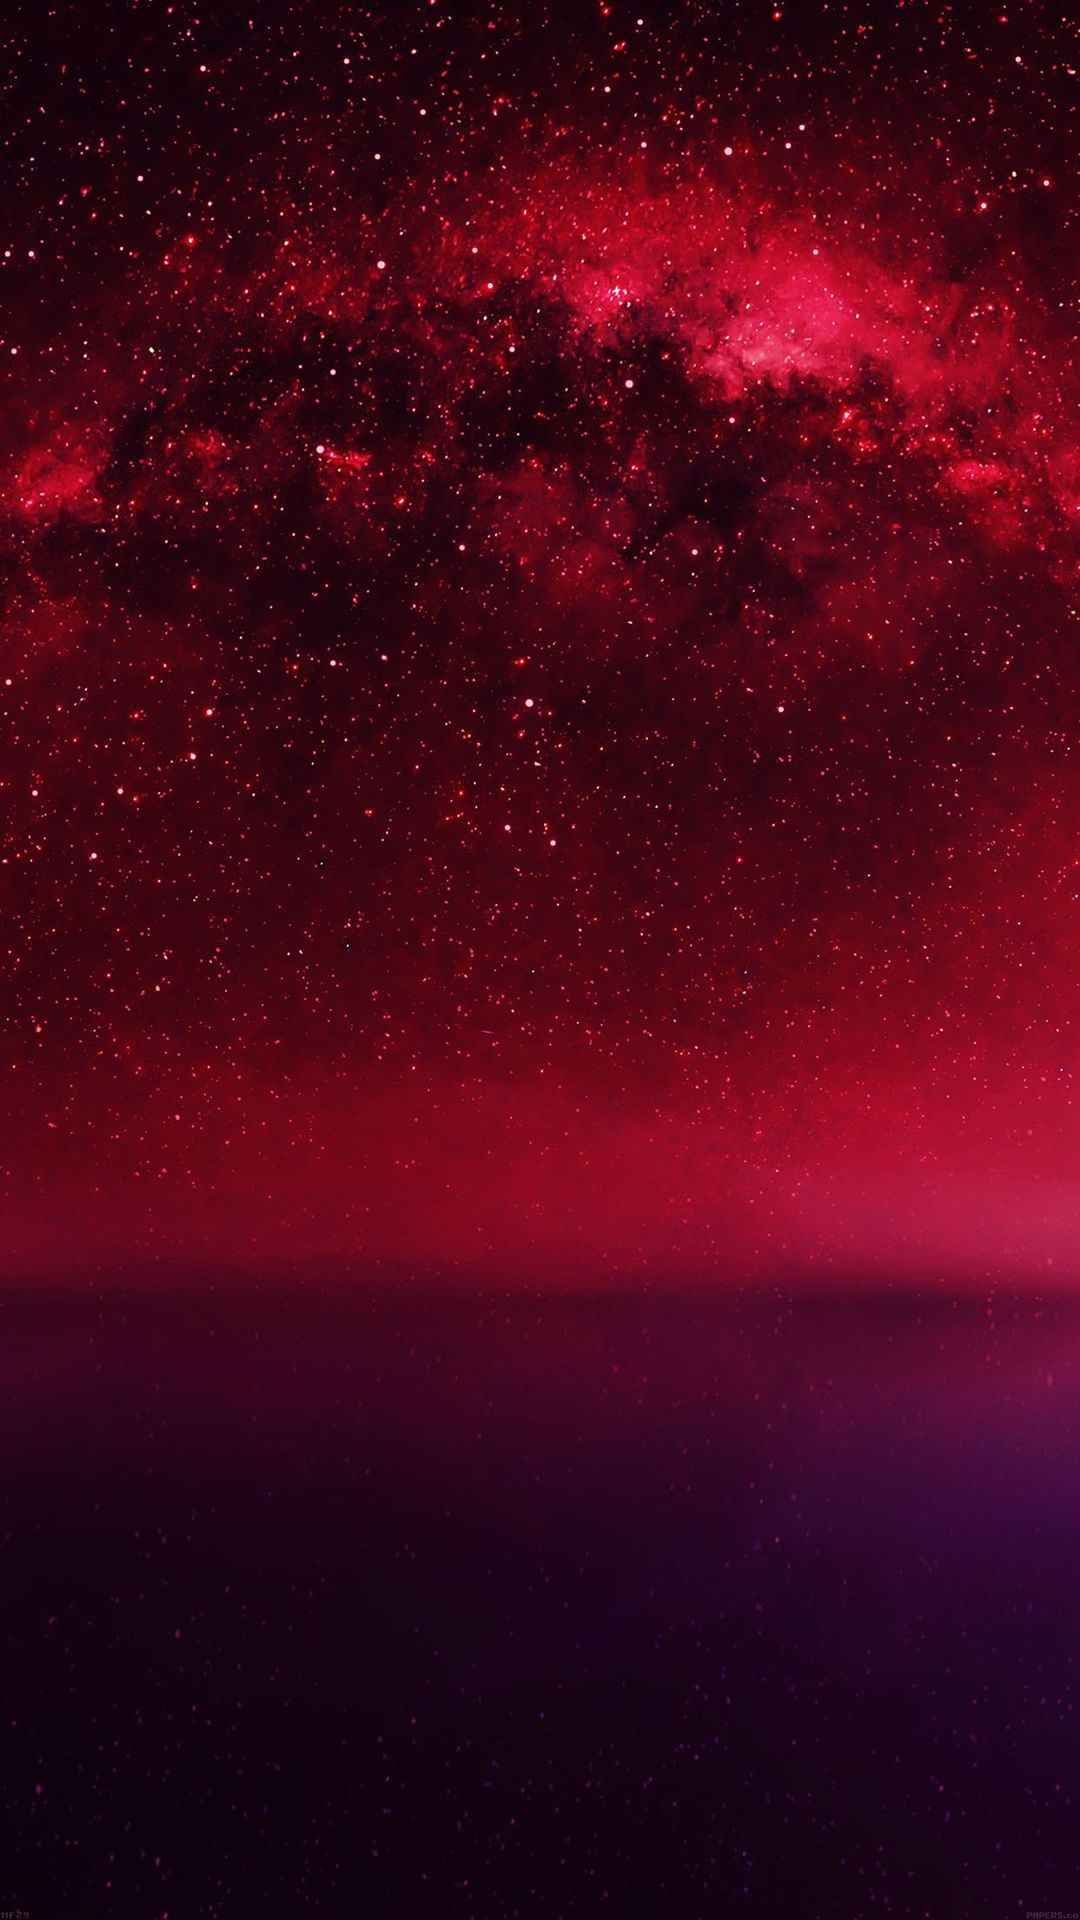 Wallpaper iphone live photo - Cosmos Red Night Live Lake Space Starry Iphone 6 Wallpaper